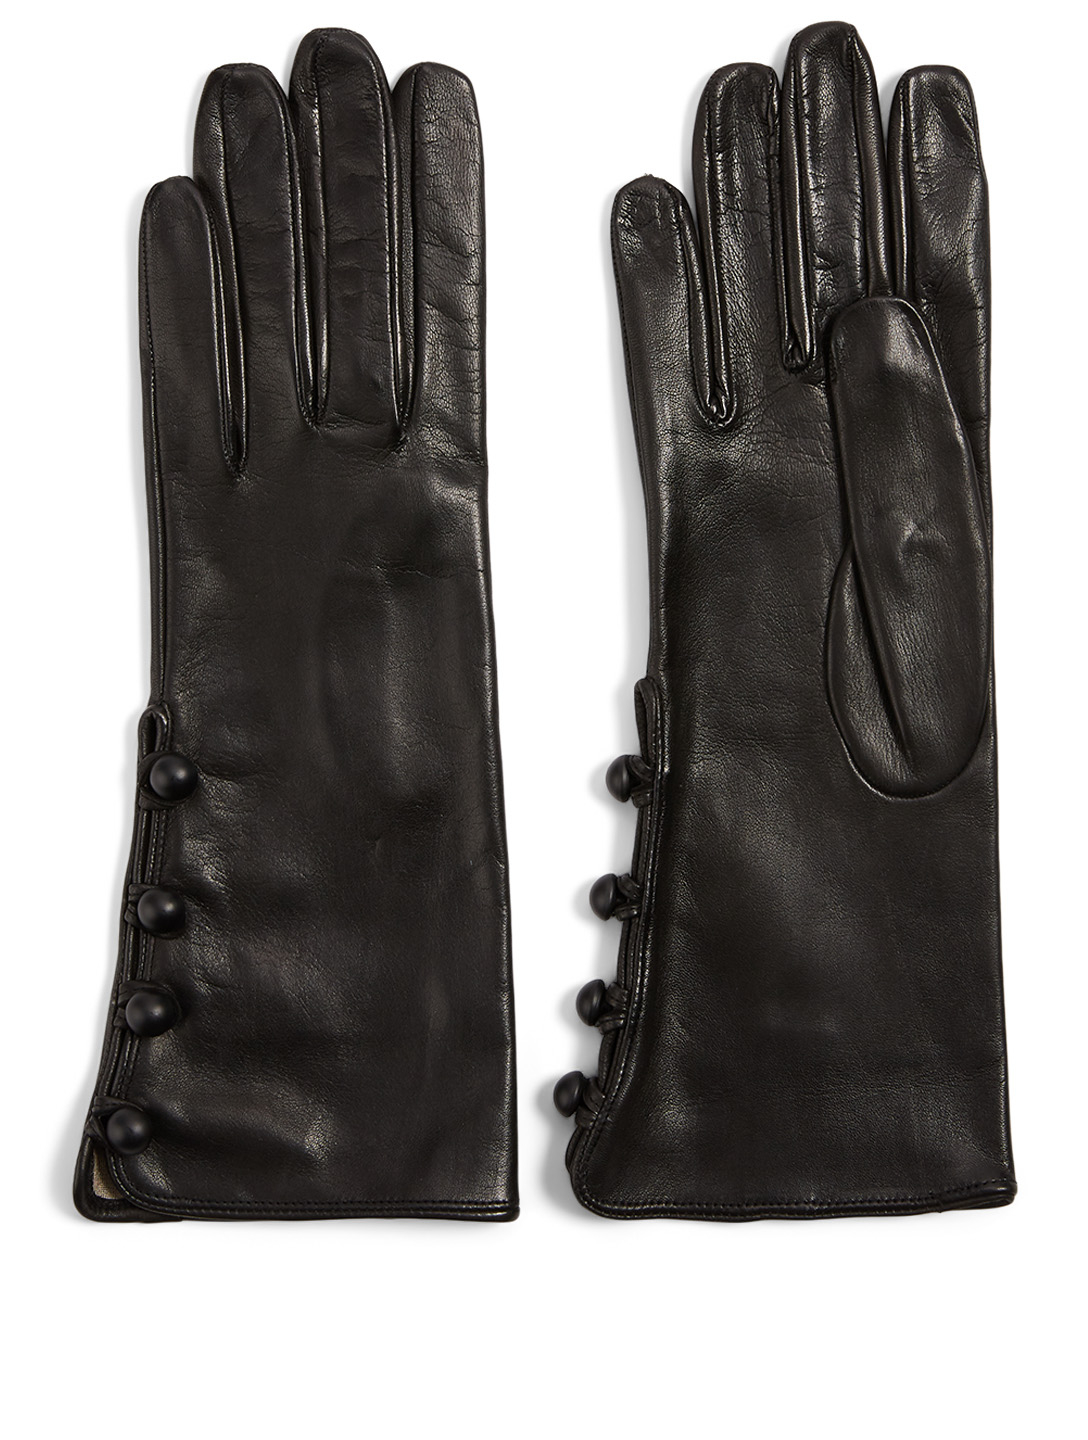 FLORIANA GLOVES Silk-Lined Leather Four-Button Gloves Women's Black